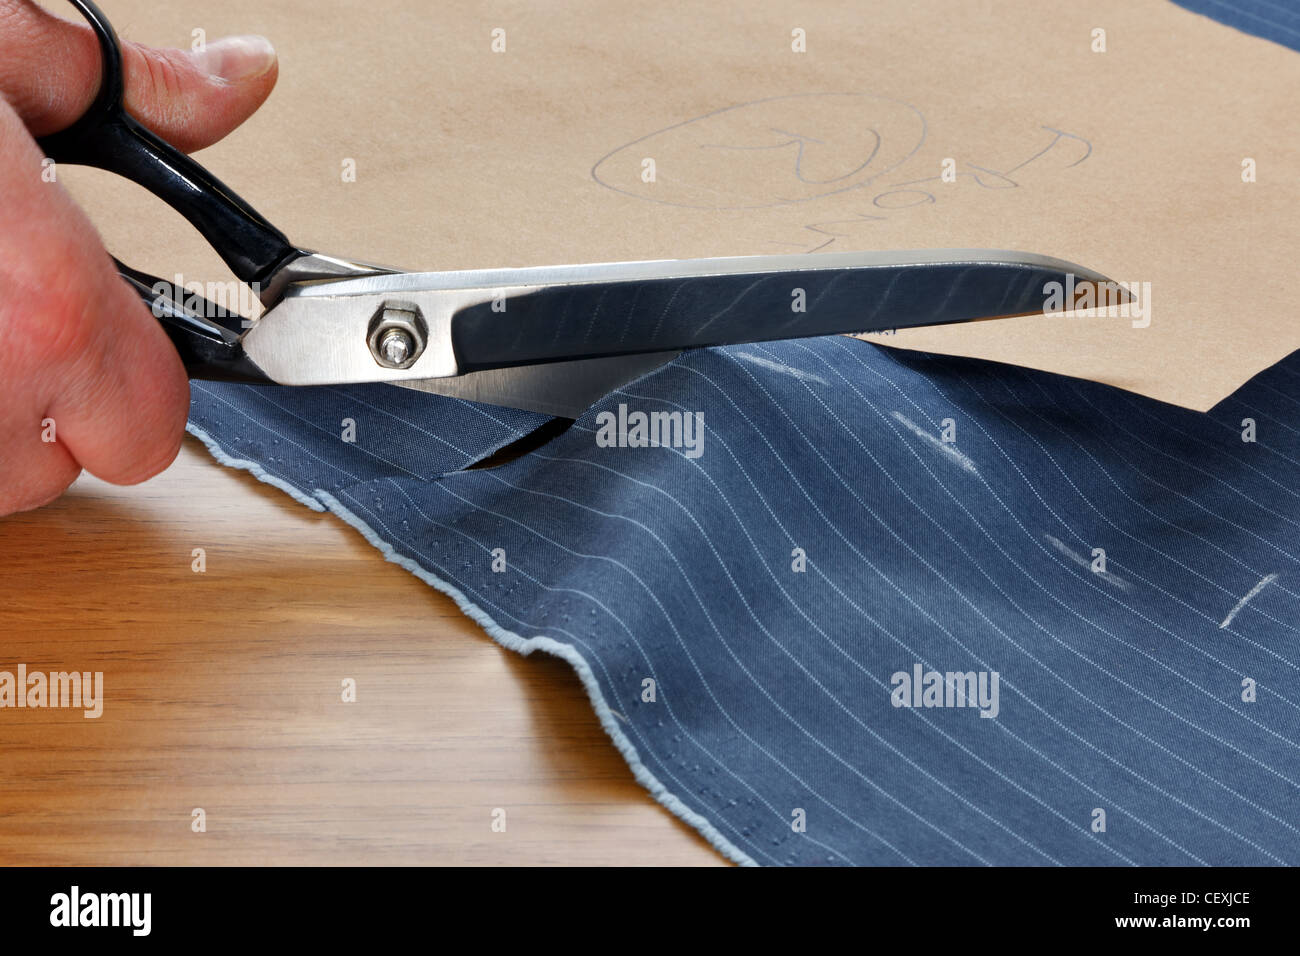 Photo of a piece of pinstripe material being cut around a bespoke template - Stock Image